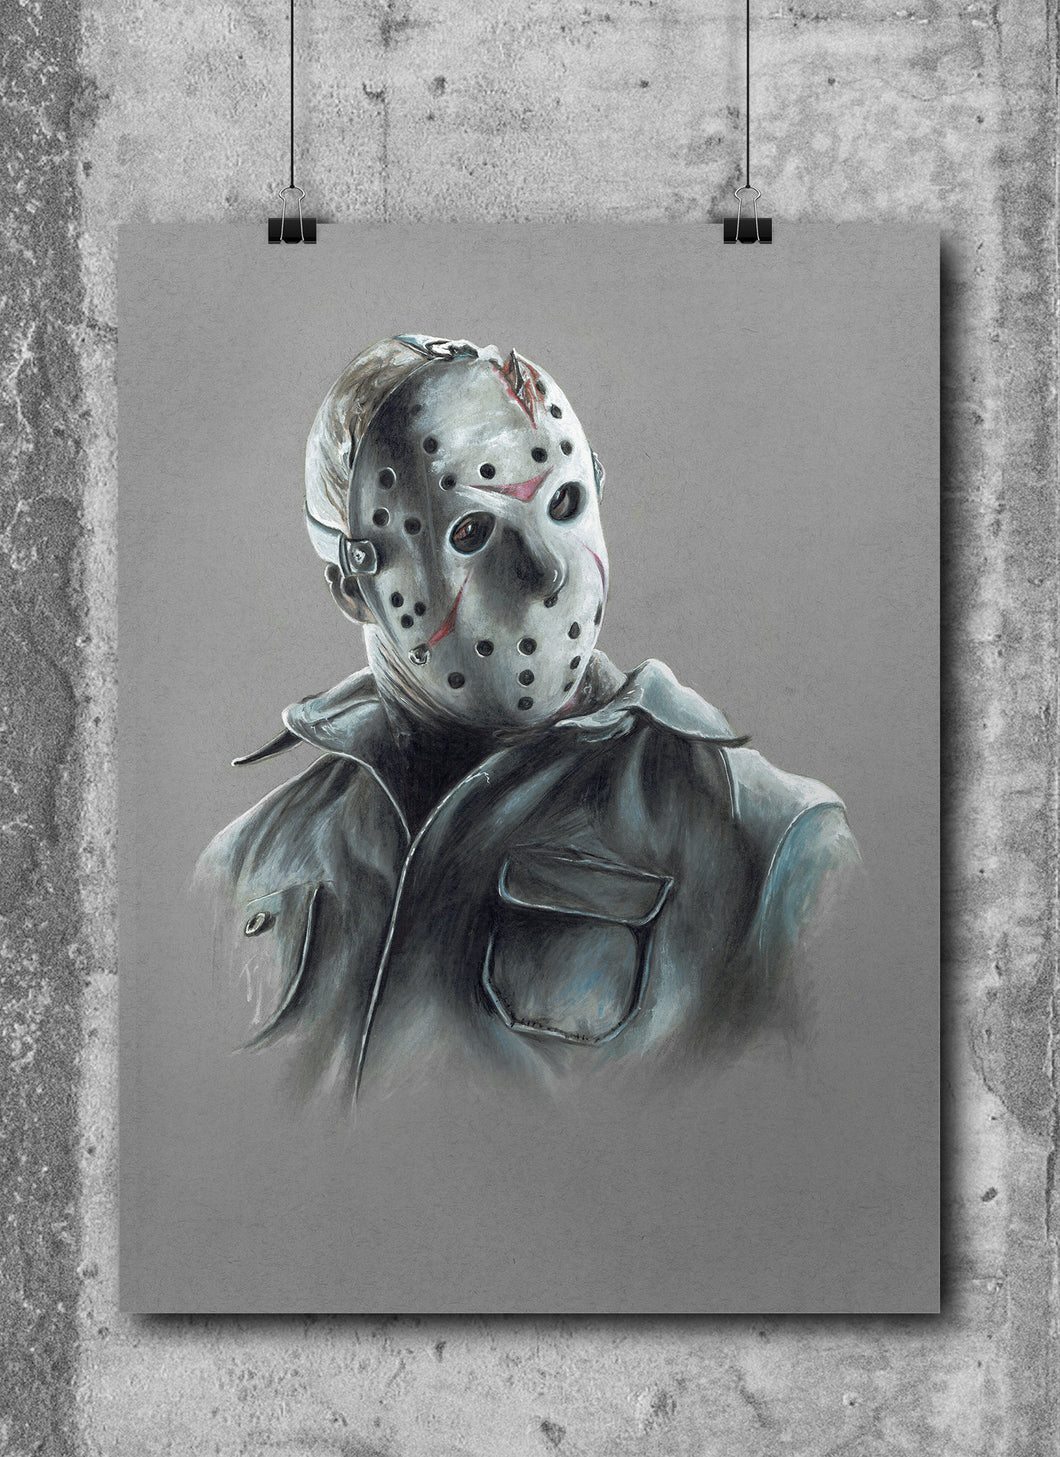 Jason Voorhees/Limited Edition/Hand Drawing by Wil Shrike